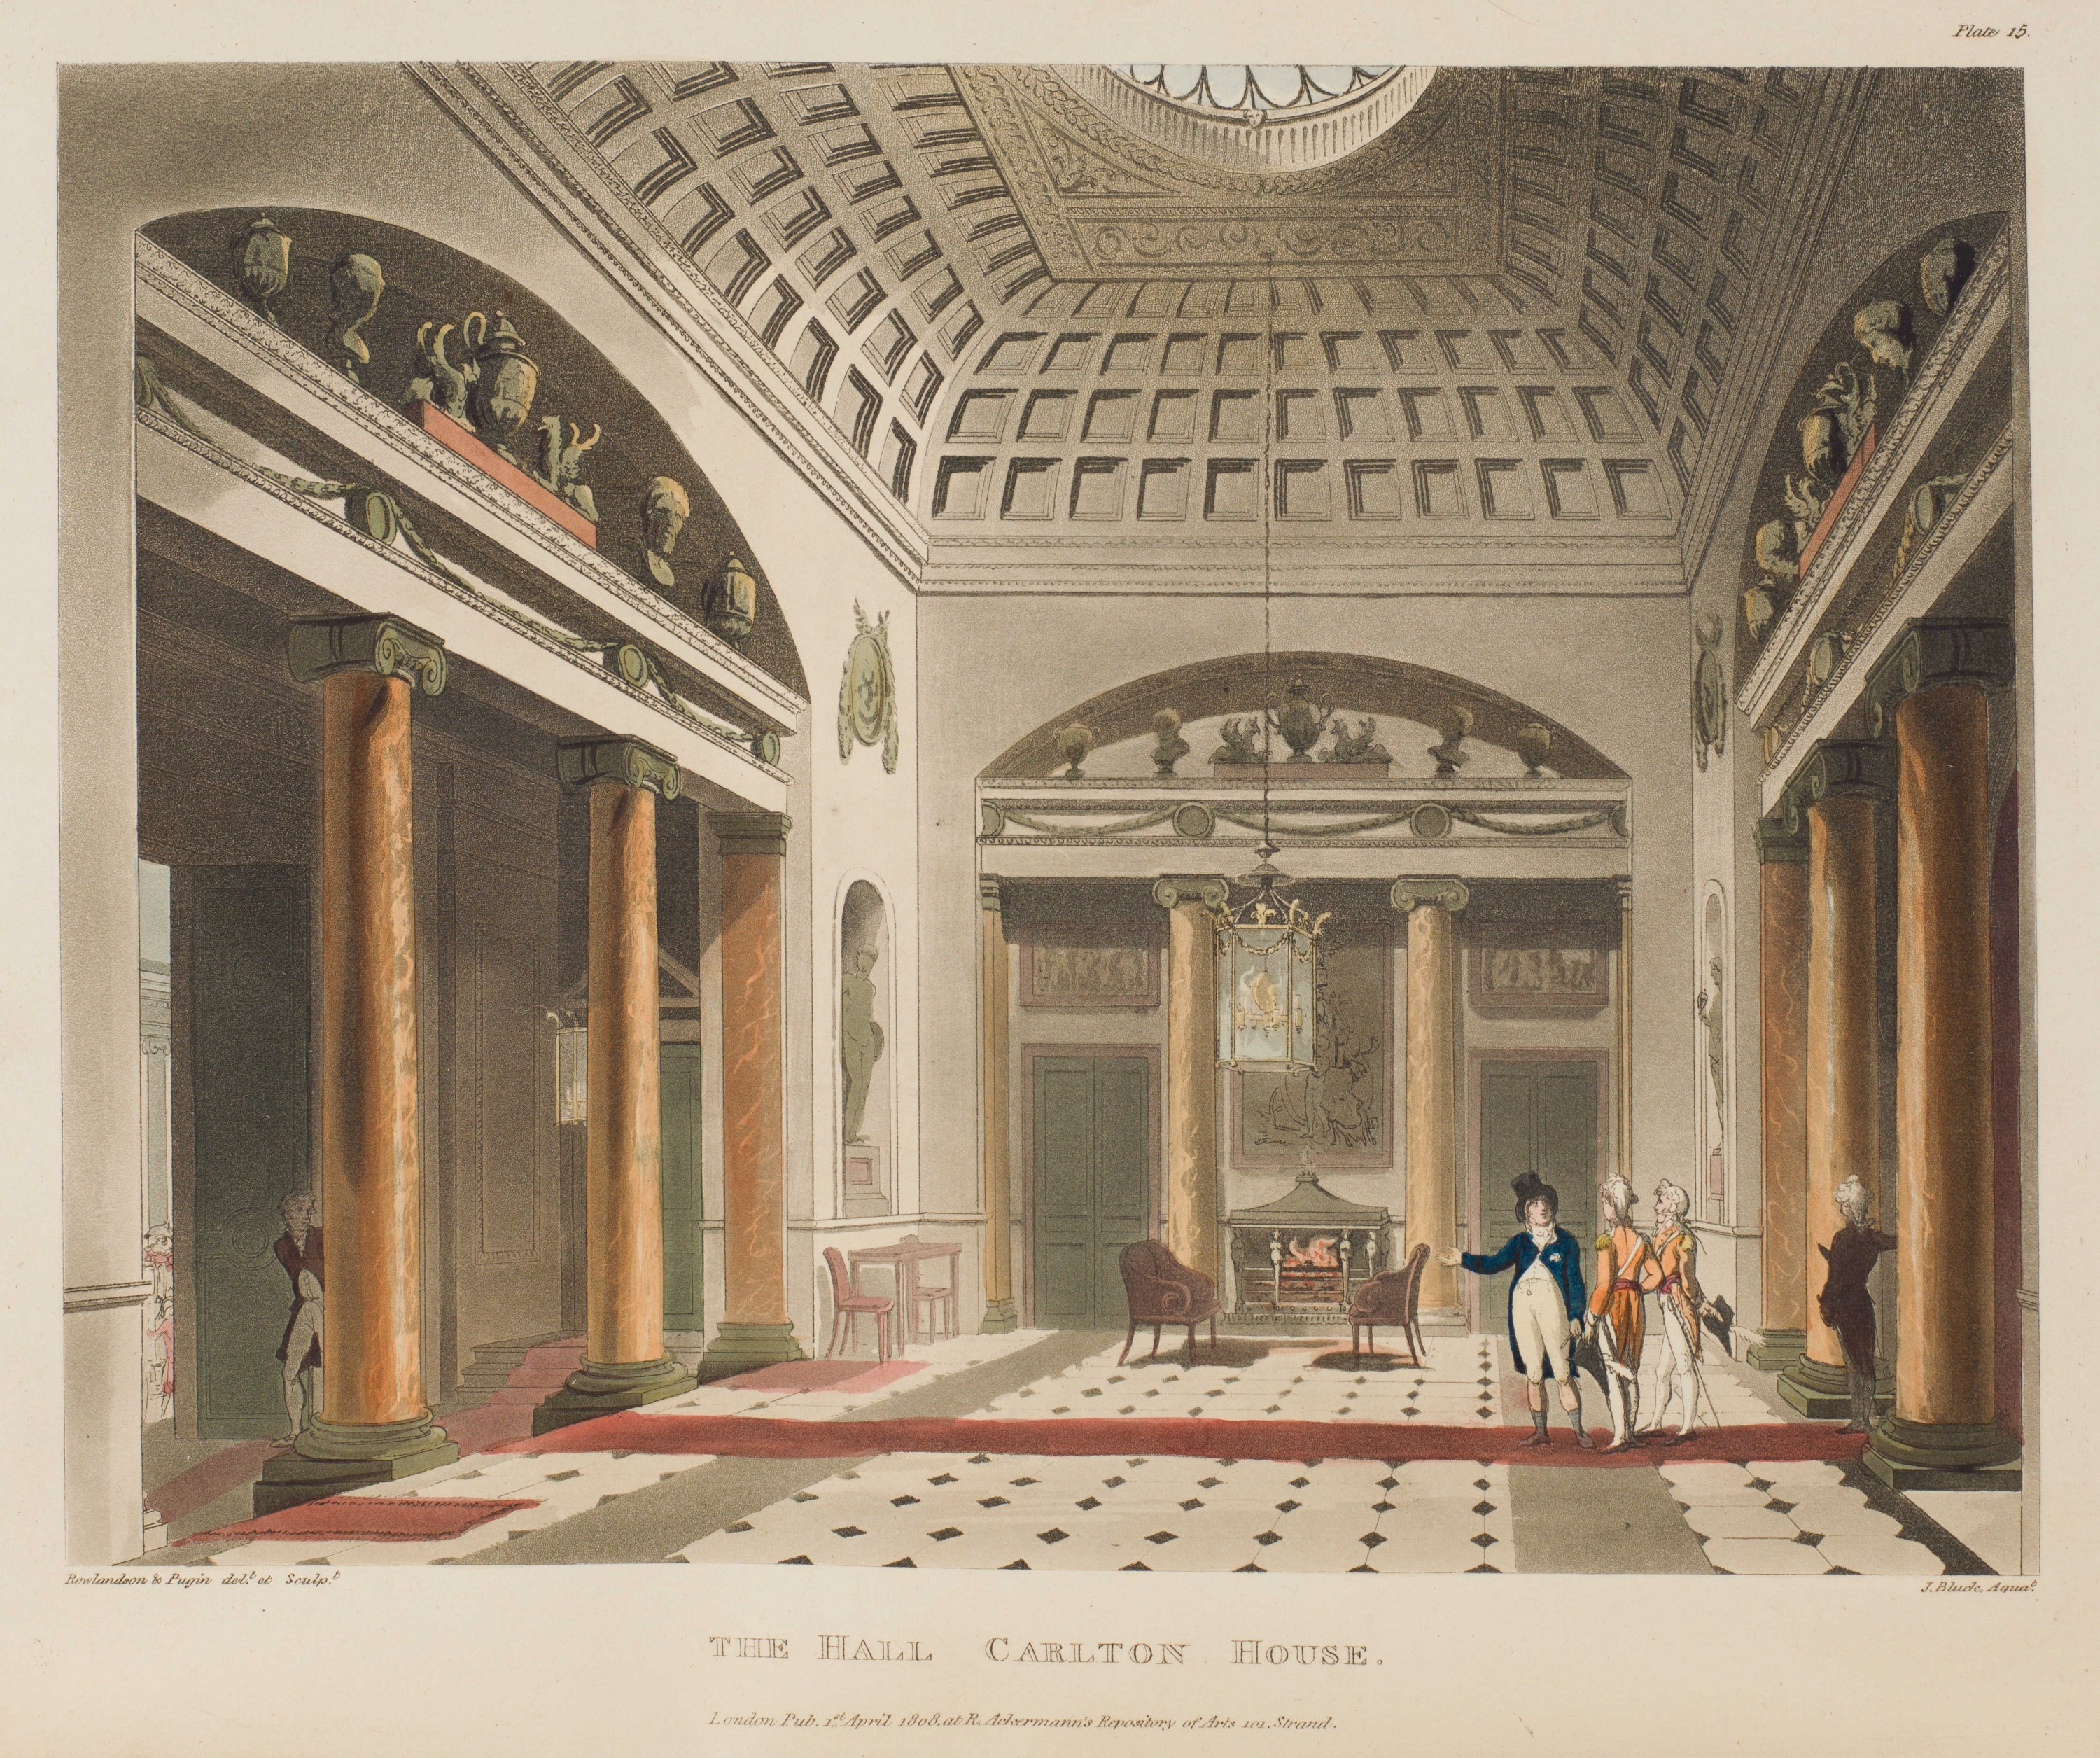 015 - The Hall, Carlton House